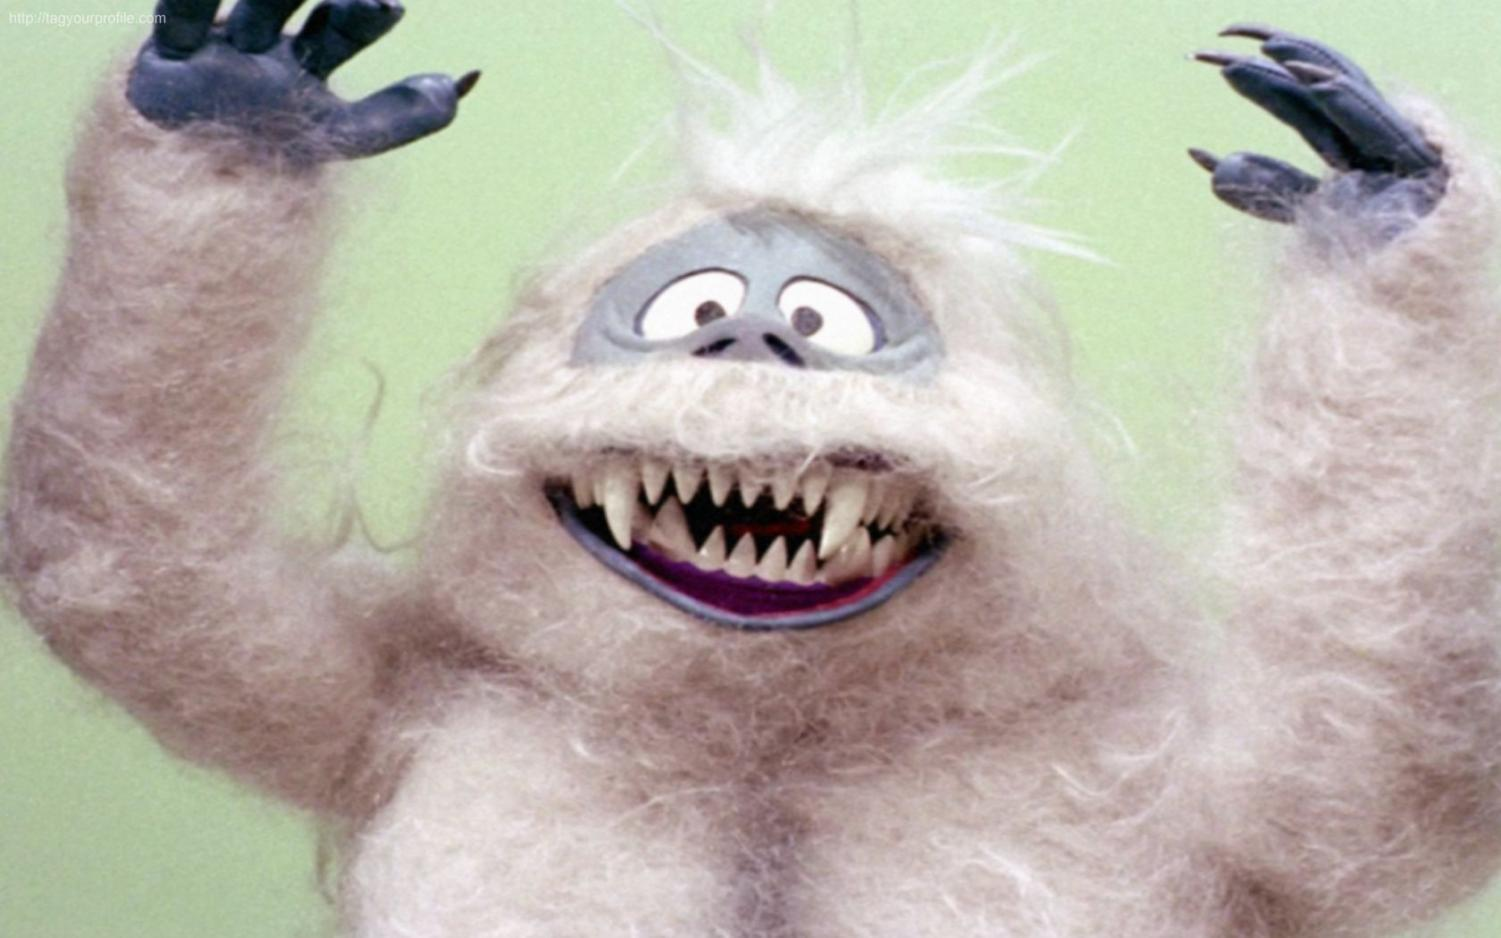 The abominable snowman understands.